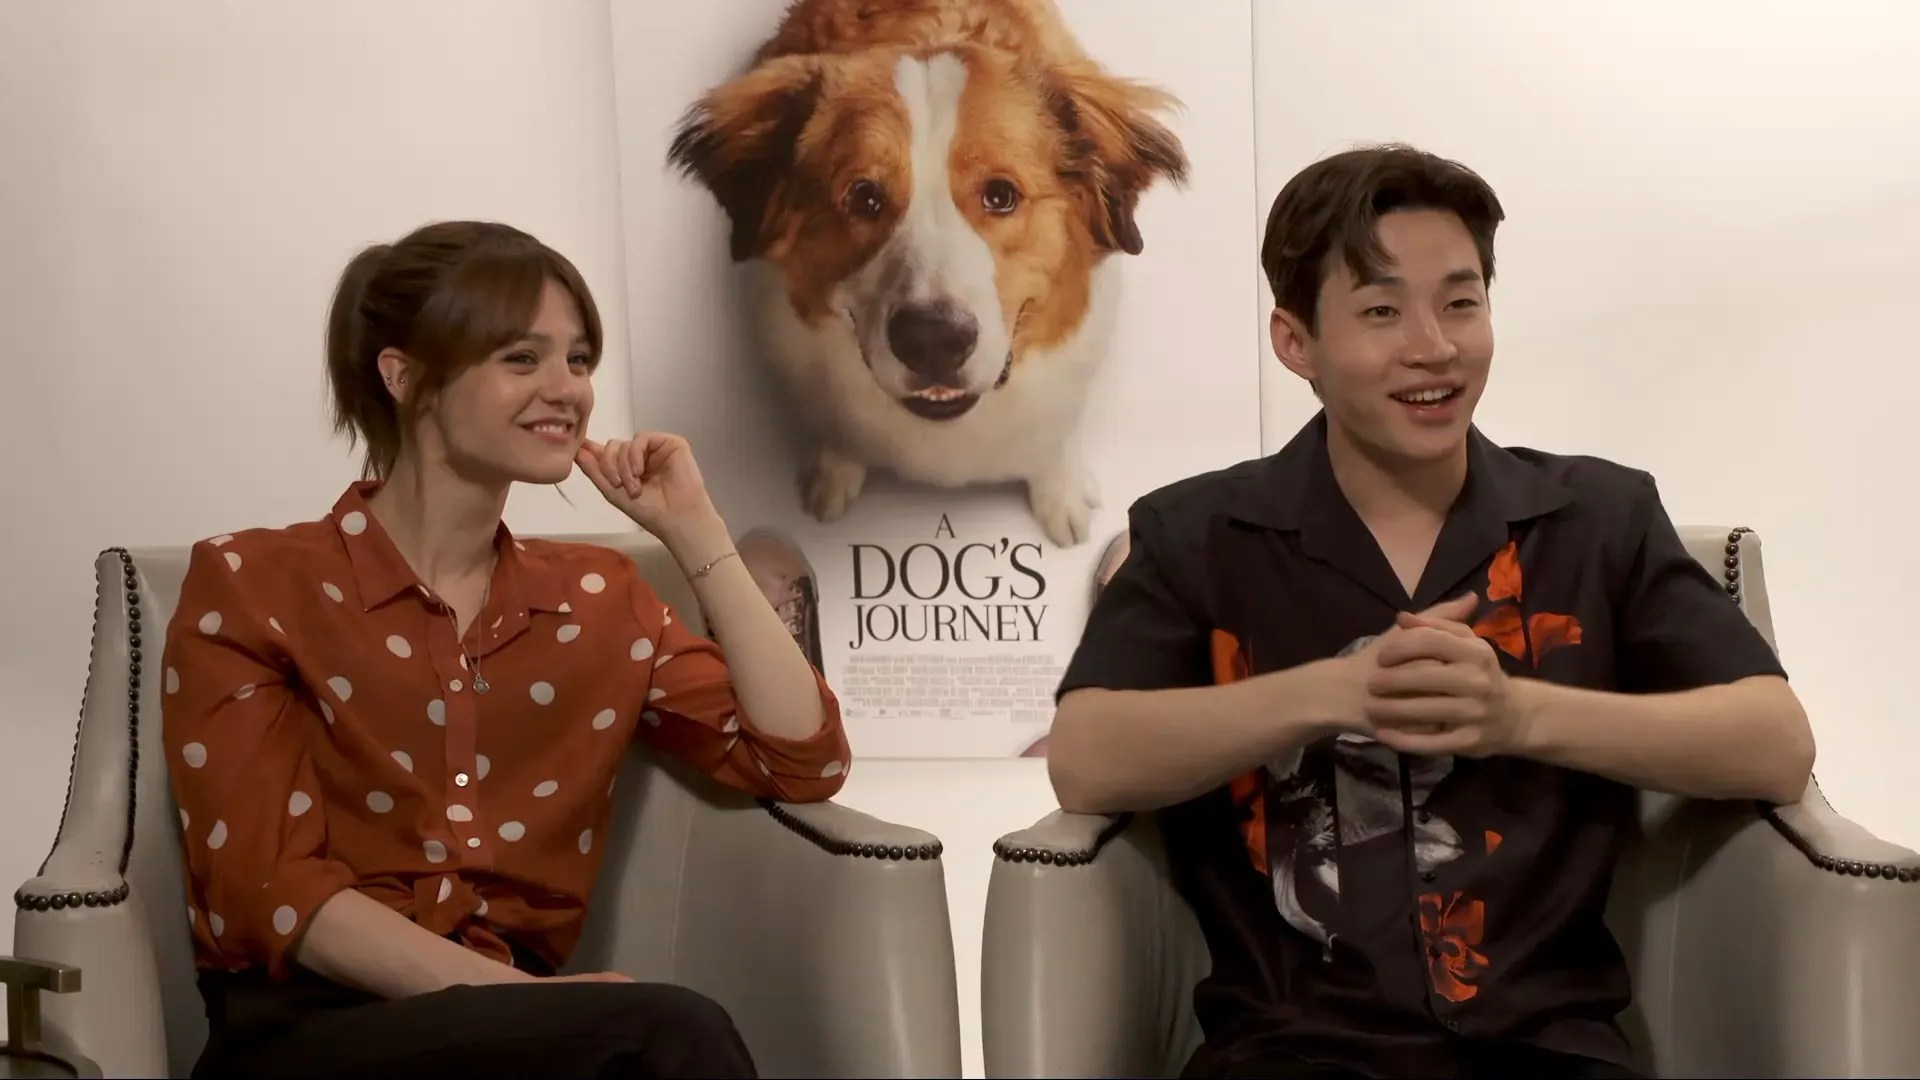 Universal Animal Wallpaper Henry Lau Amp Kathryn Prescott On A Dog S Journey And Their